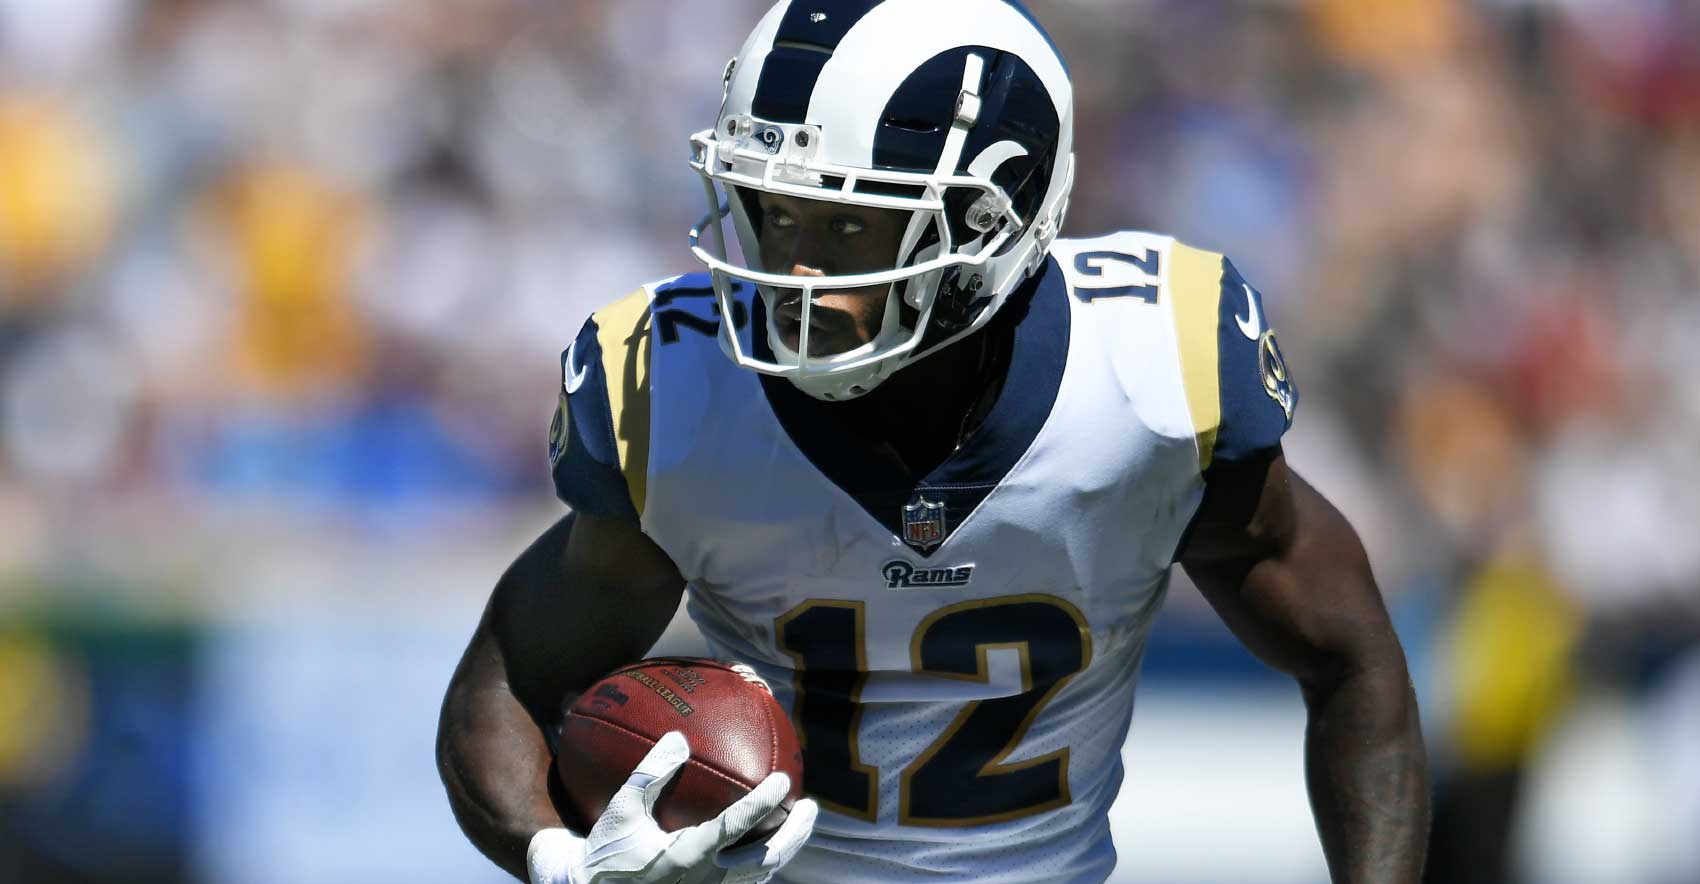 Fantasy Football Strategy: 5 Ways to Draft WRs